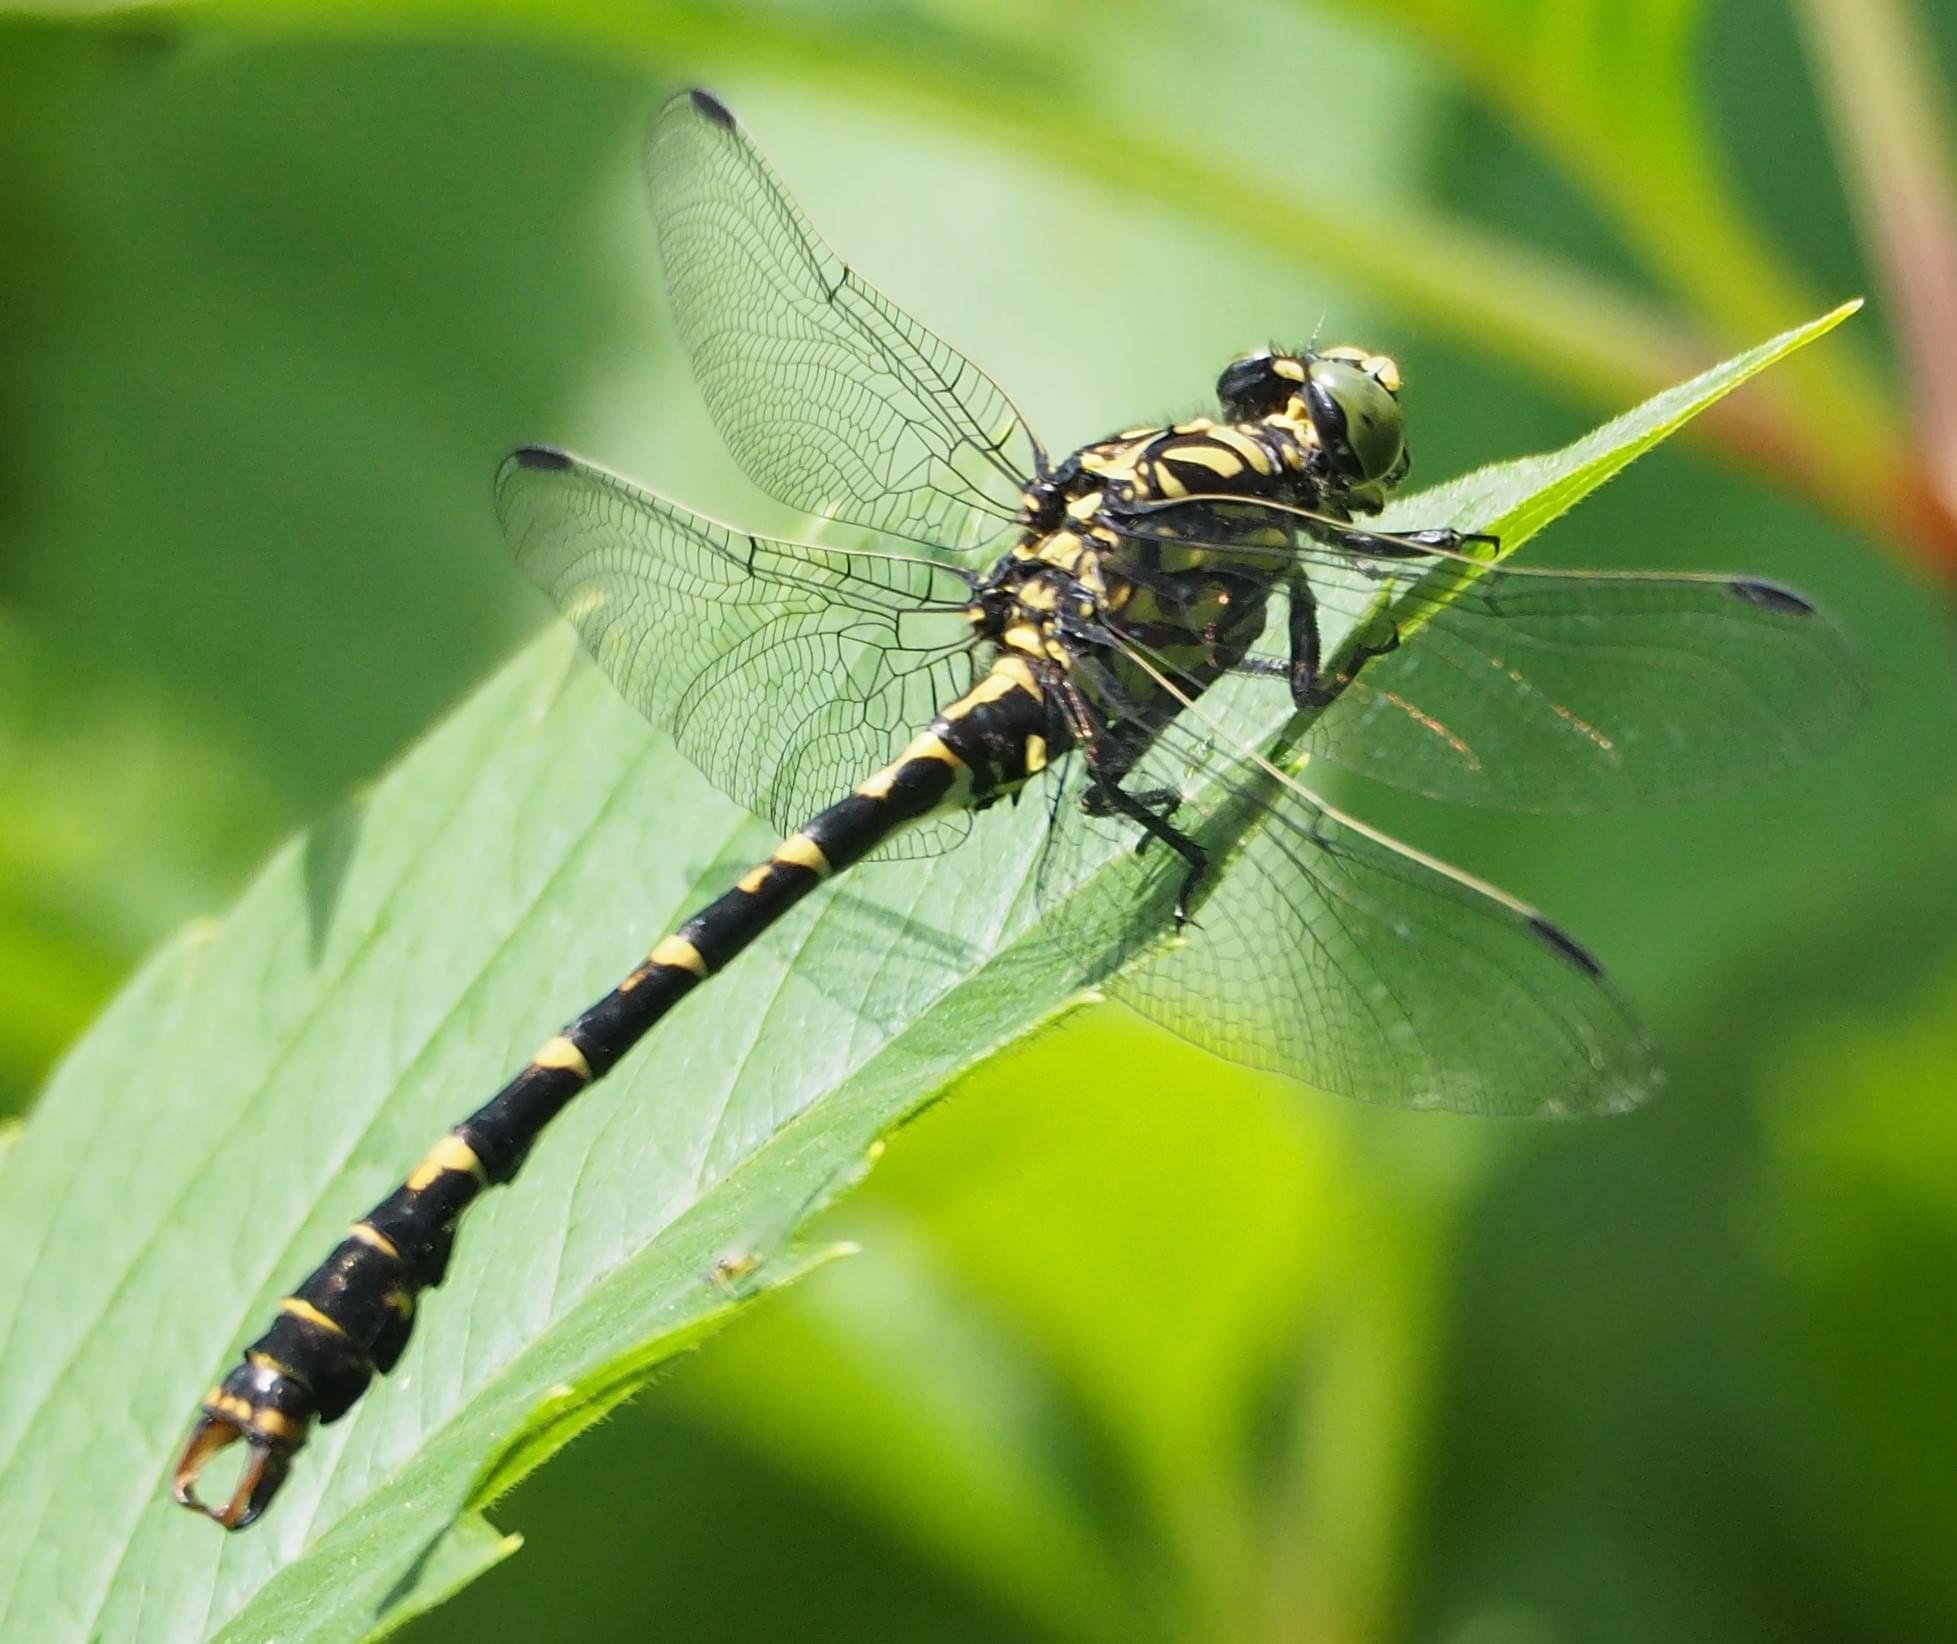 Gomphus dragonfly